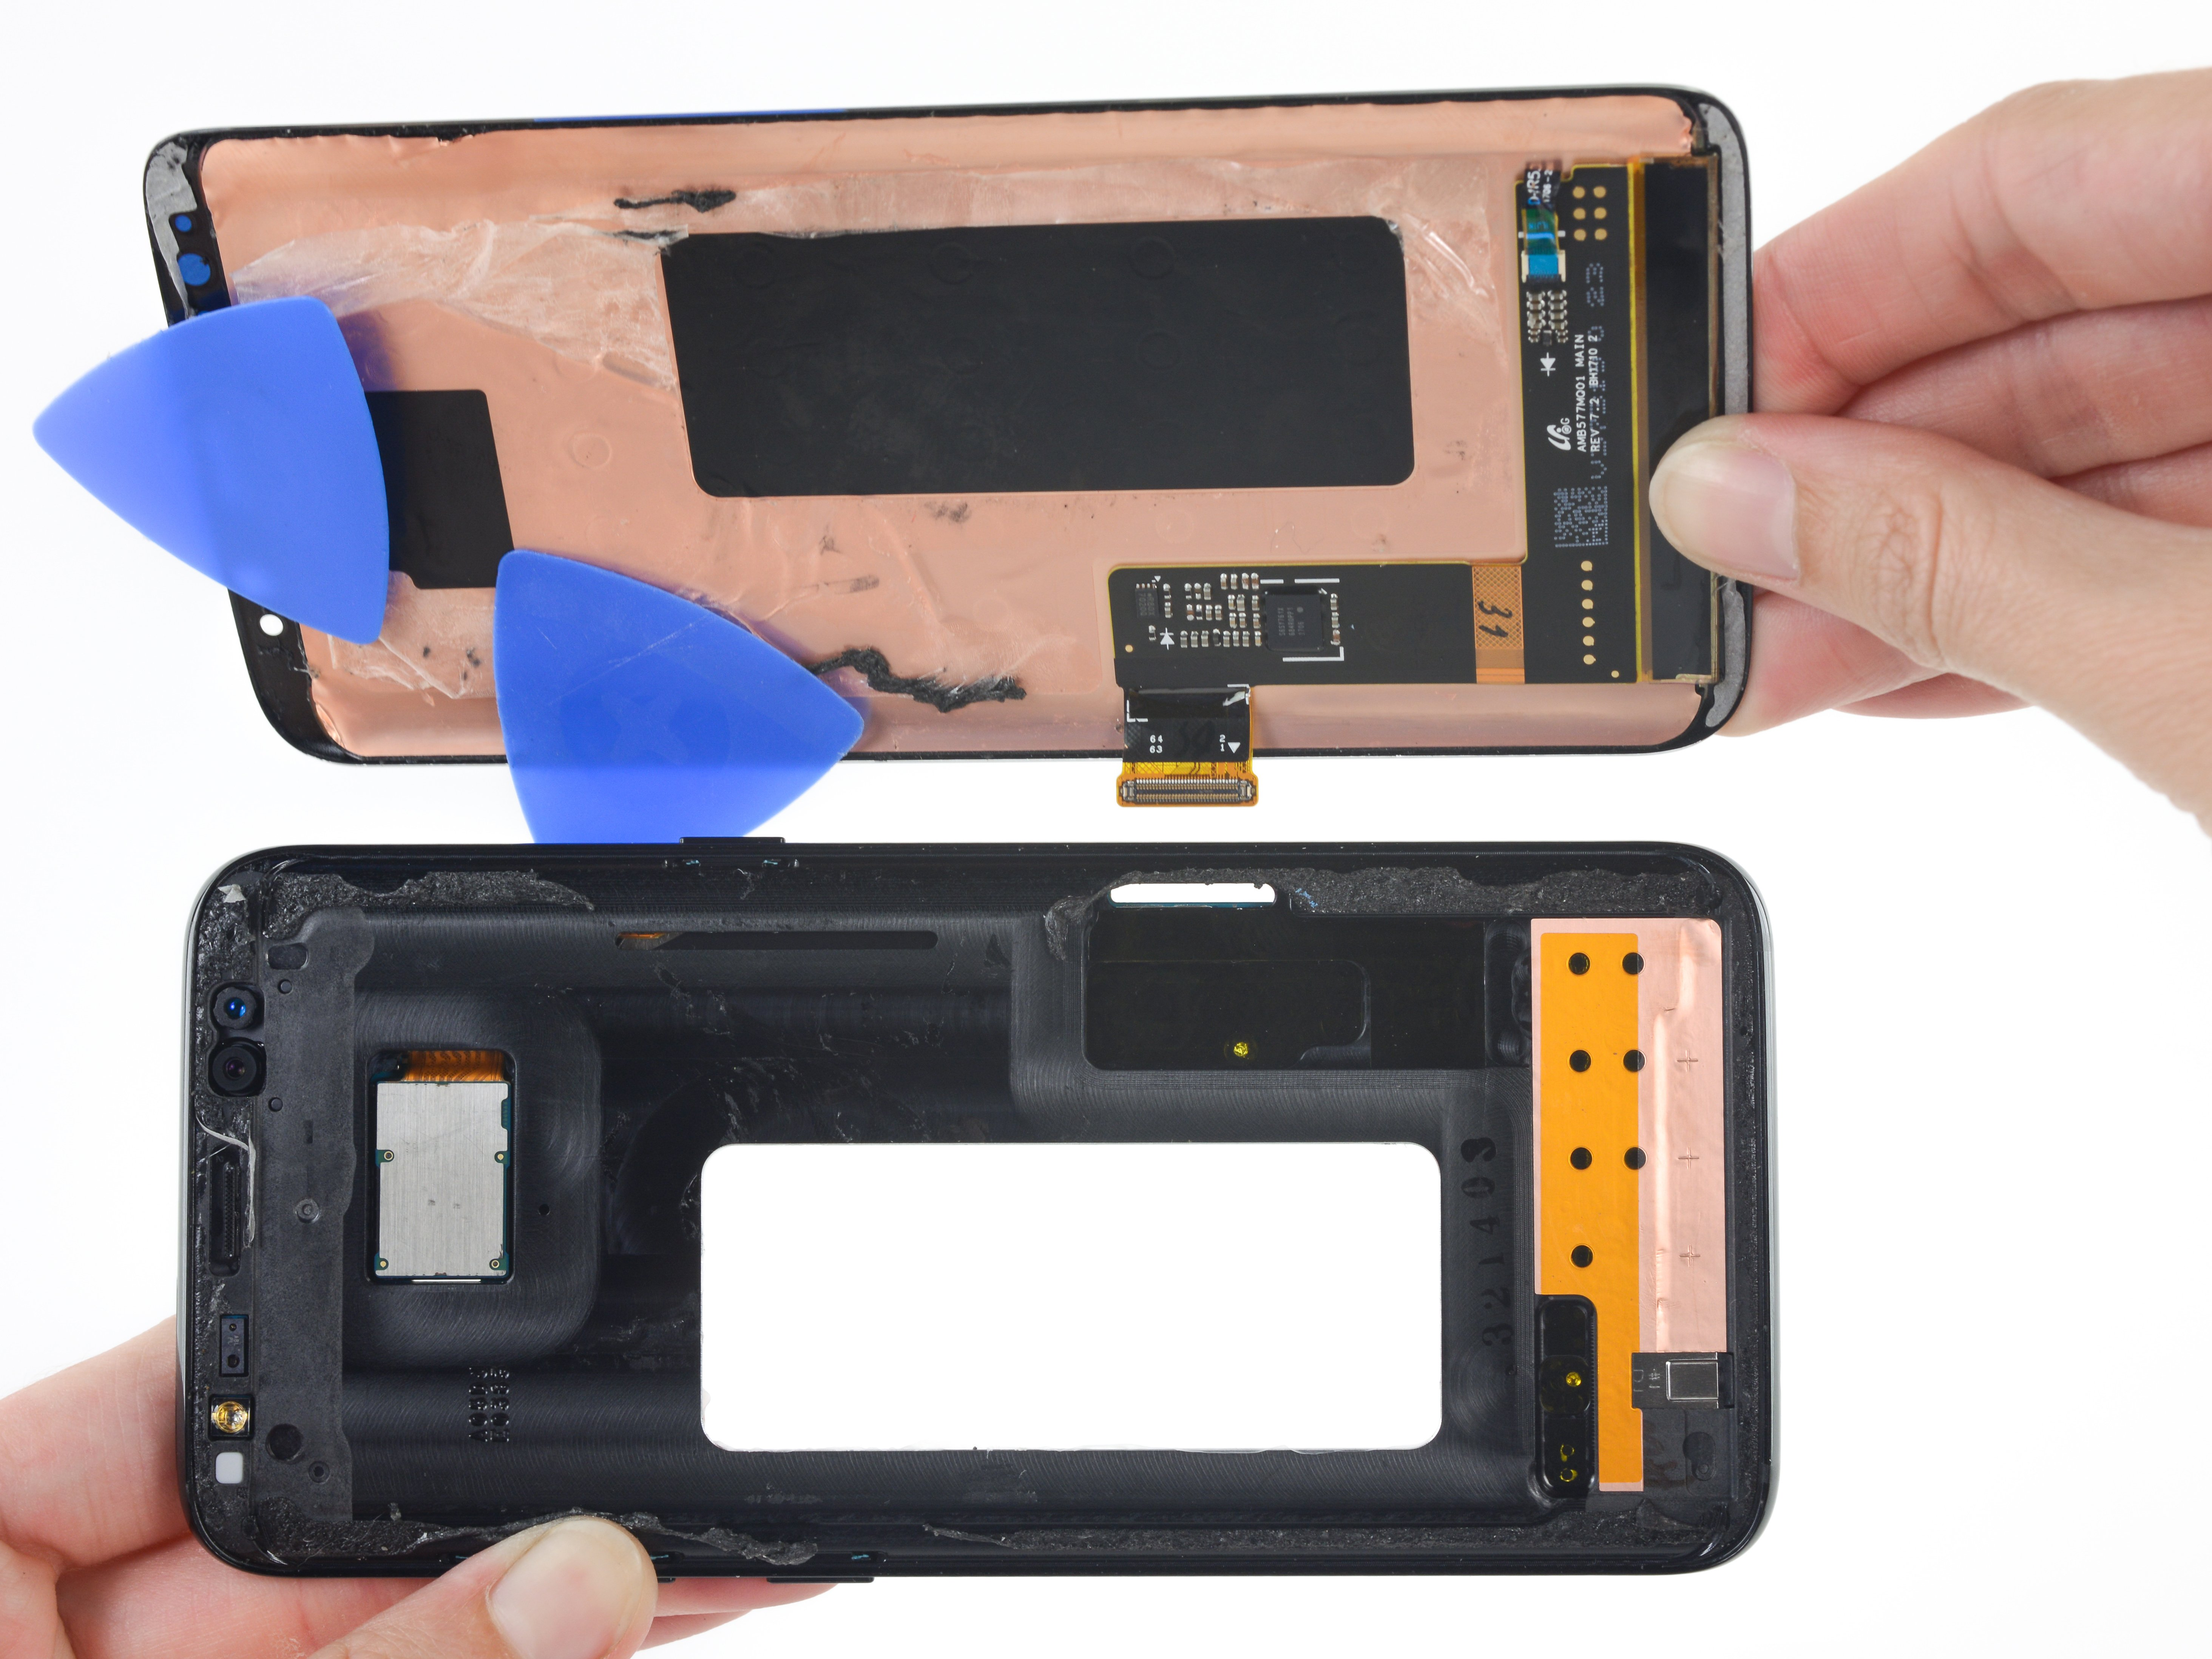 Samsung S9 display assembly opened up.